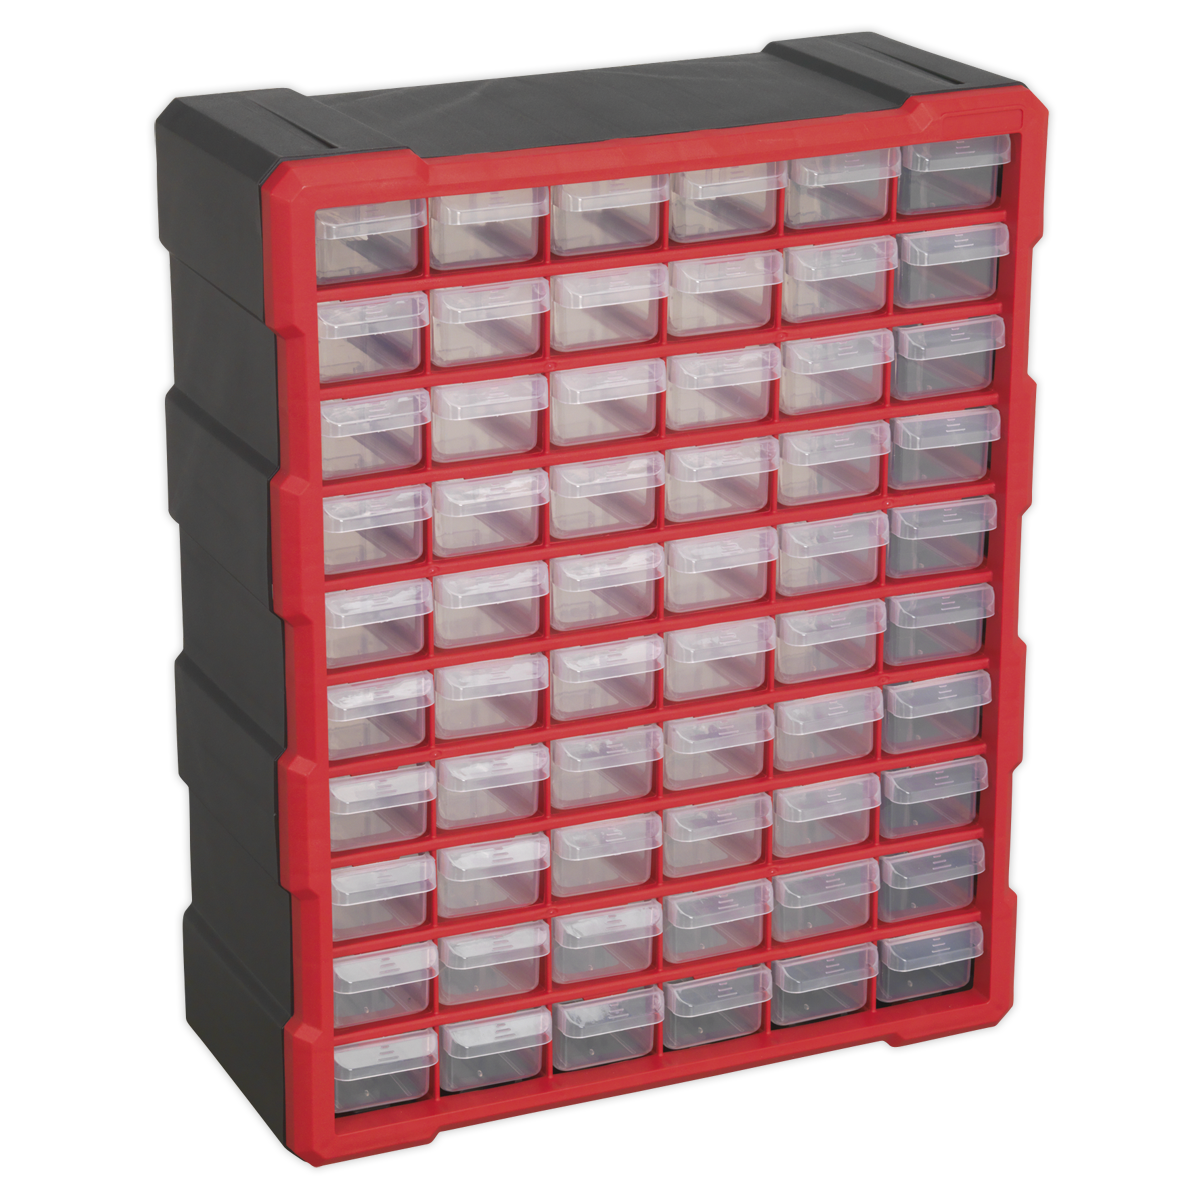 Cabinet Box 60 Drawer - Red/Black